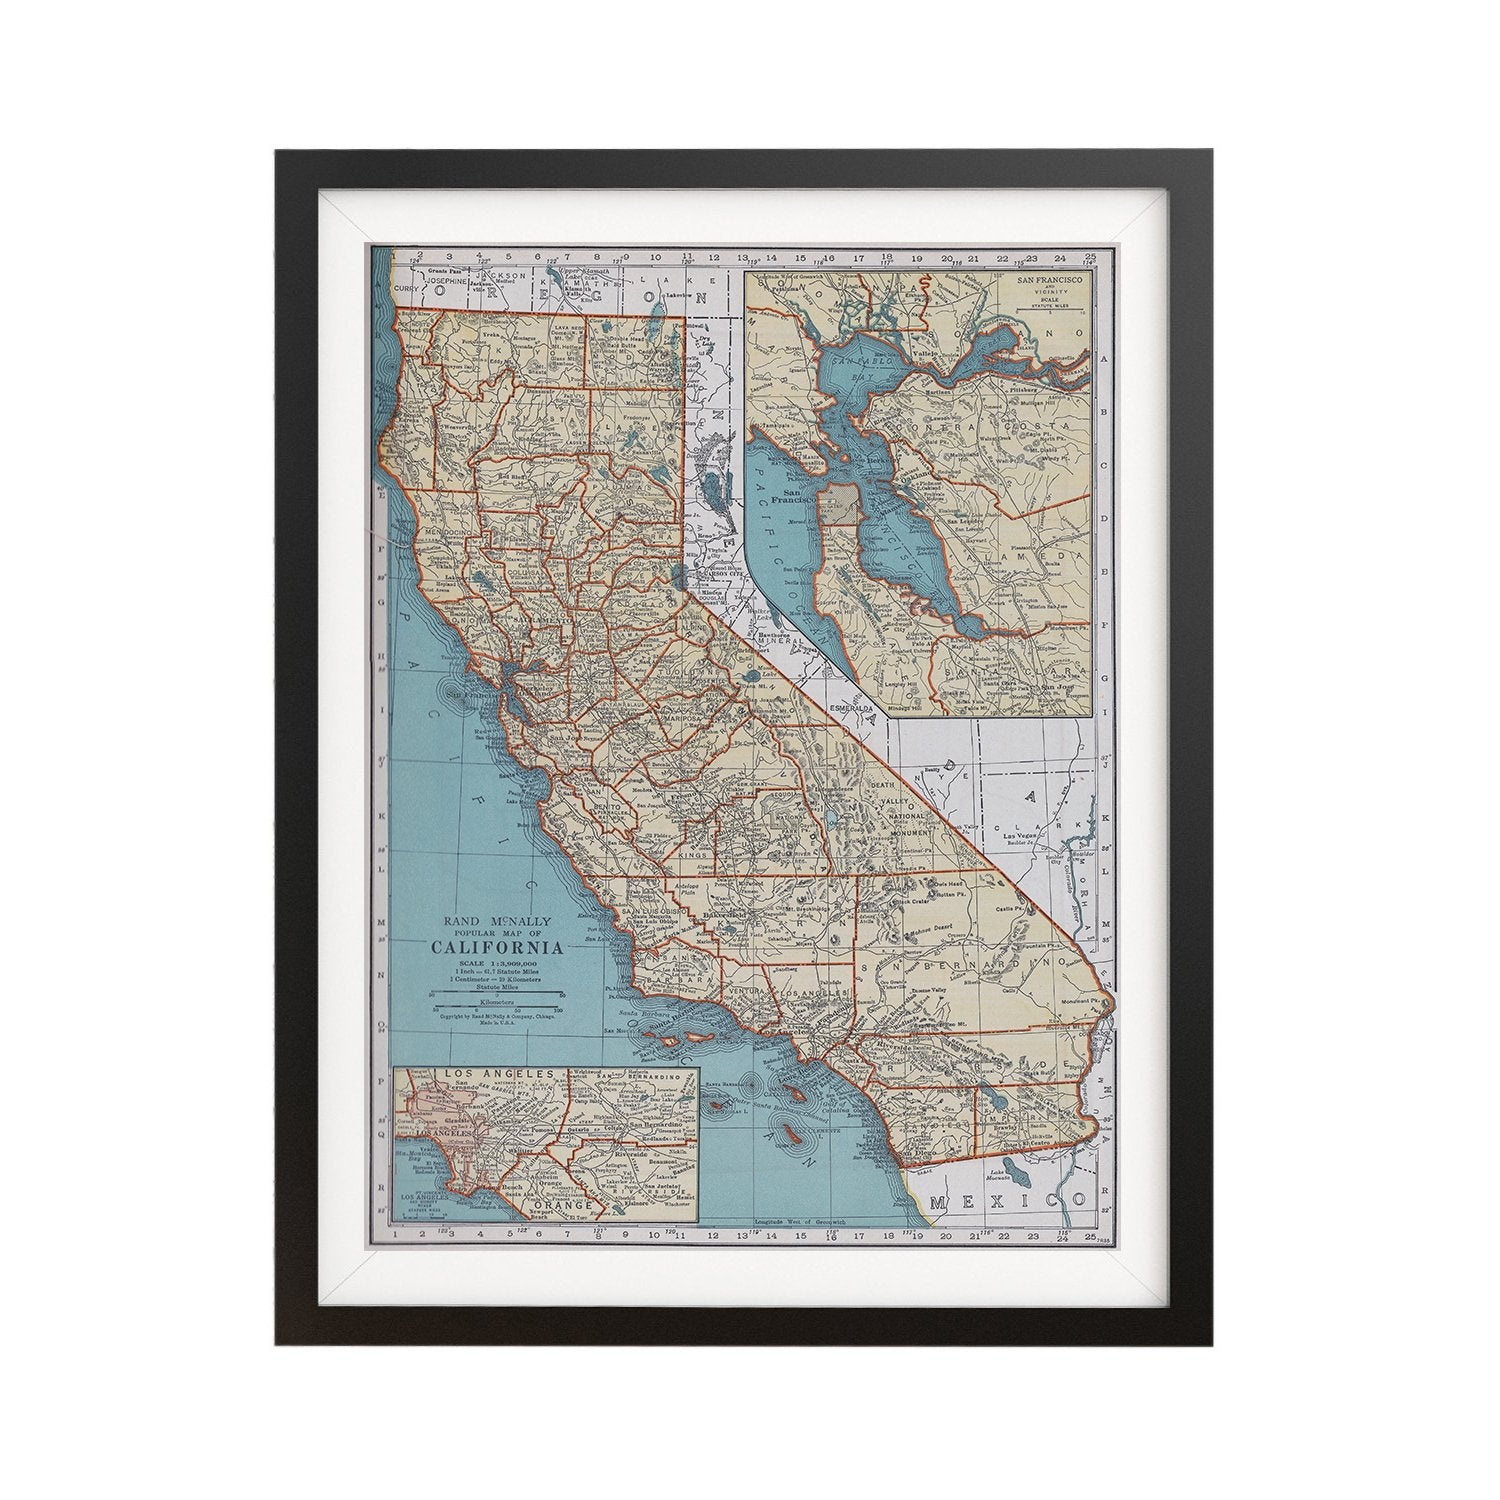 Buy California Vintage Map Poster Online